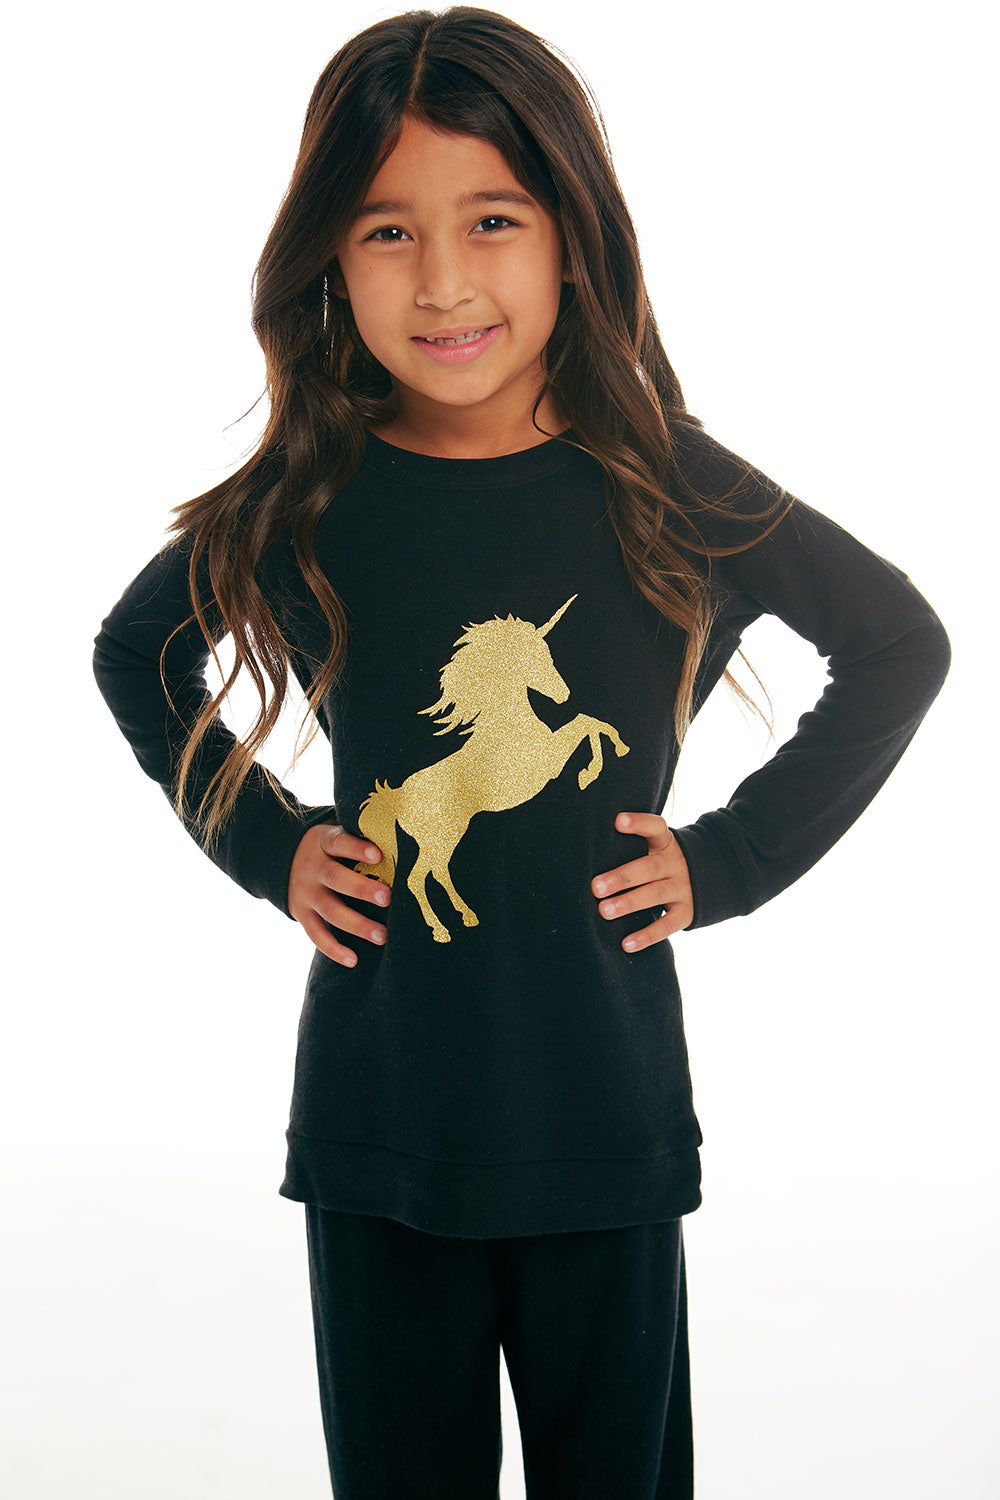 Golden Unicorn, GIRLS, chaserbrand.com,chaser clothing,chaser apparel,chaser los angeles